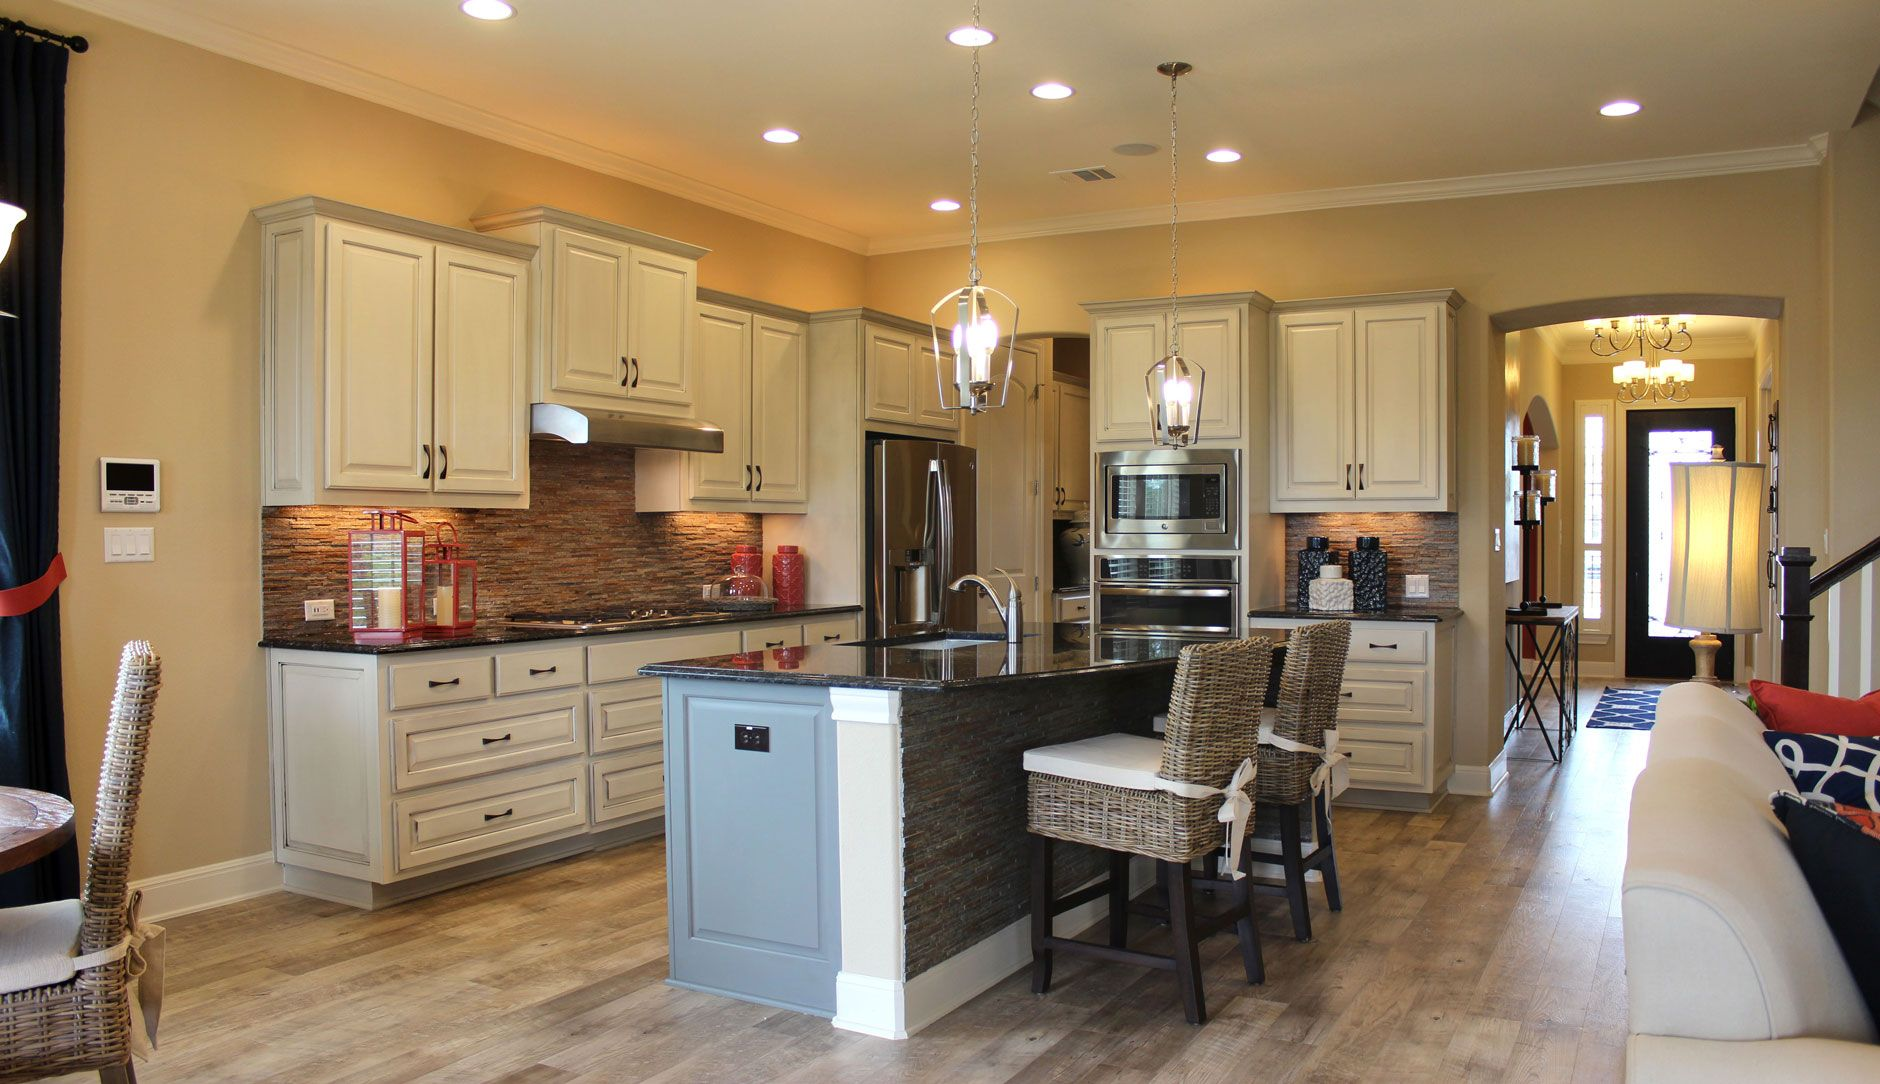 Kitchen Cabinet 2Burrows Cabinets At Travisso With Painted Amazing Ash Kitchen Cabinets Decorating Design